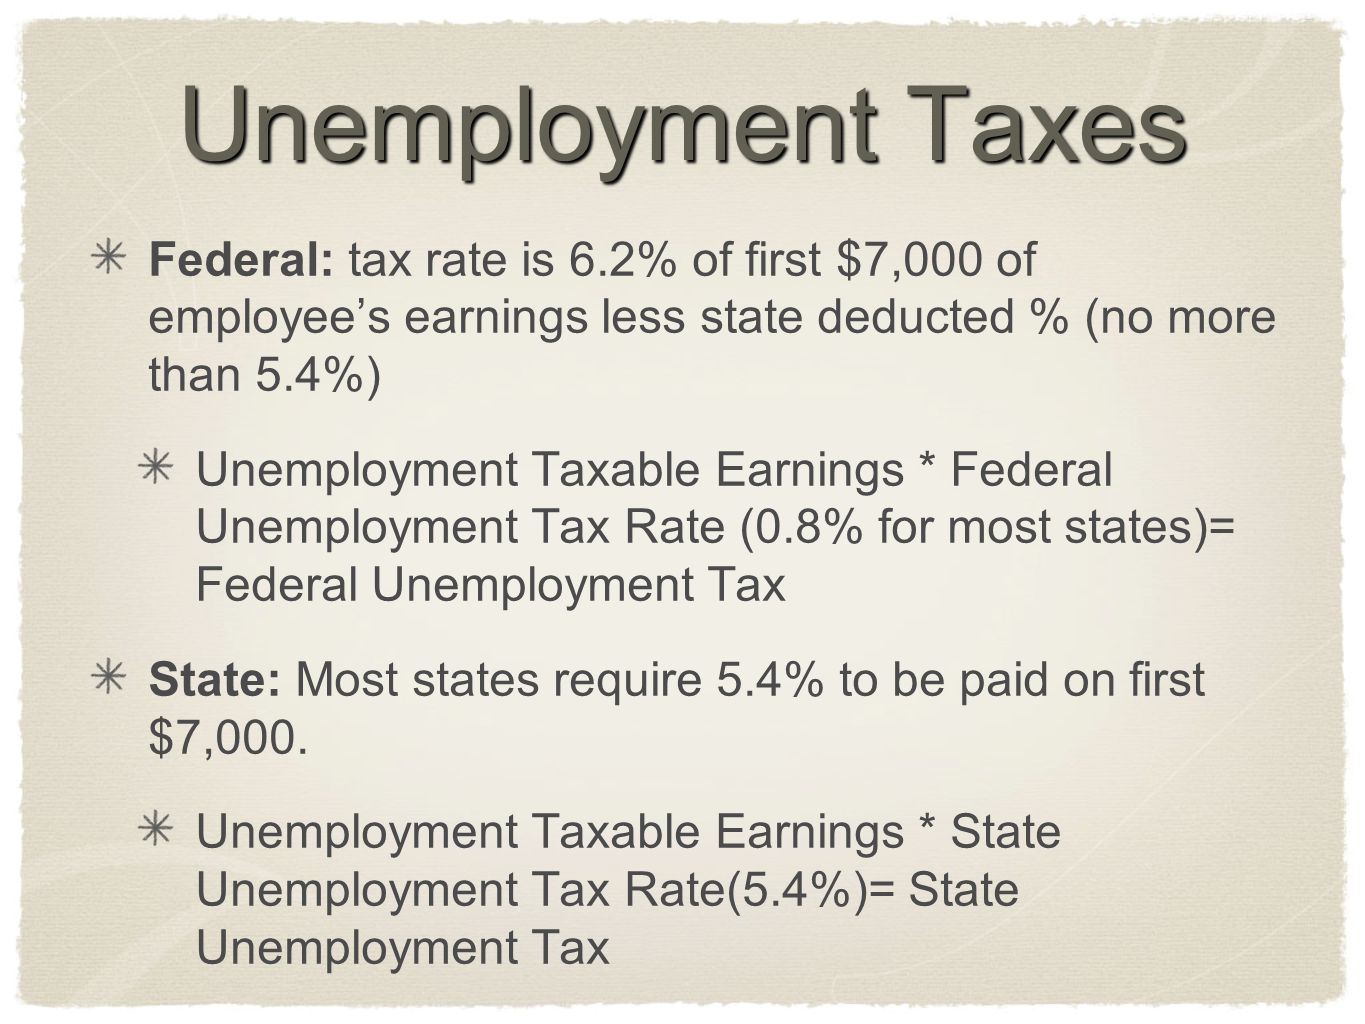 Unemployment Taxes Federal: tax rate is 6.2% of first $7,000 of employee's earnings less state deducted % (no more than 5.4%)